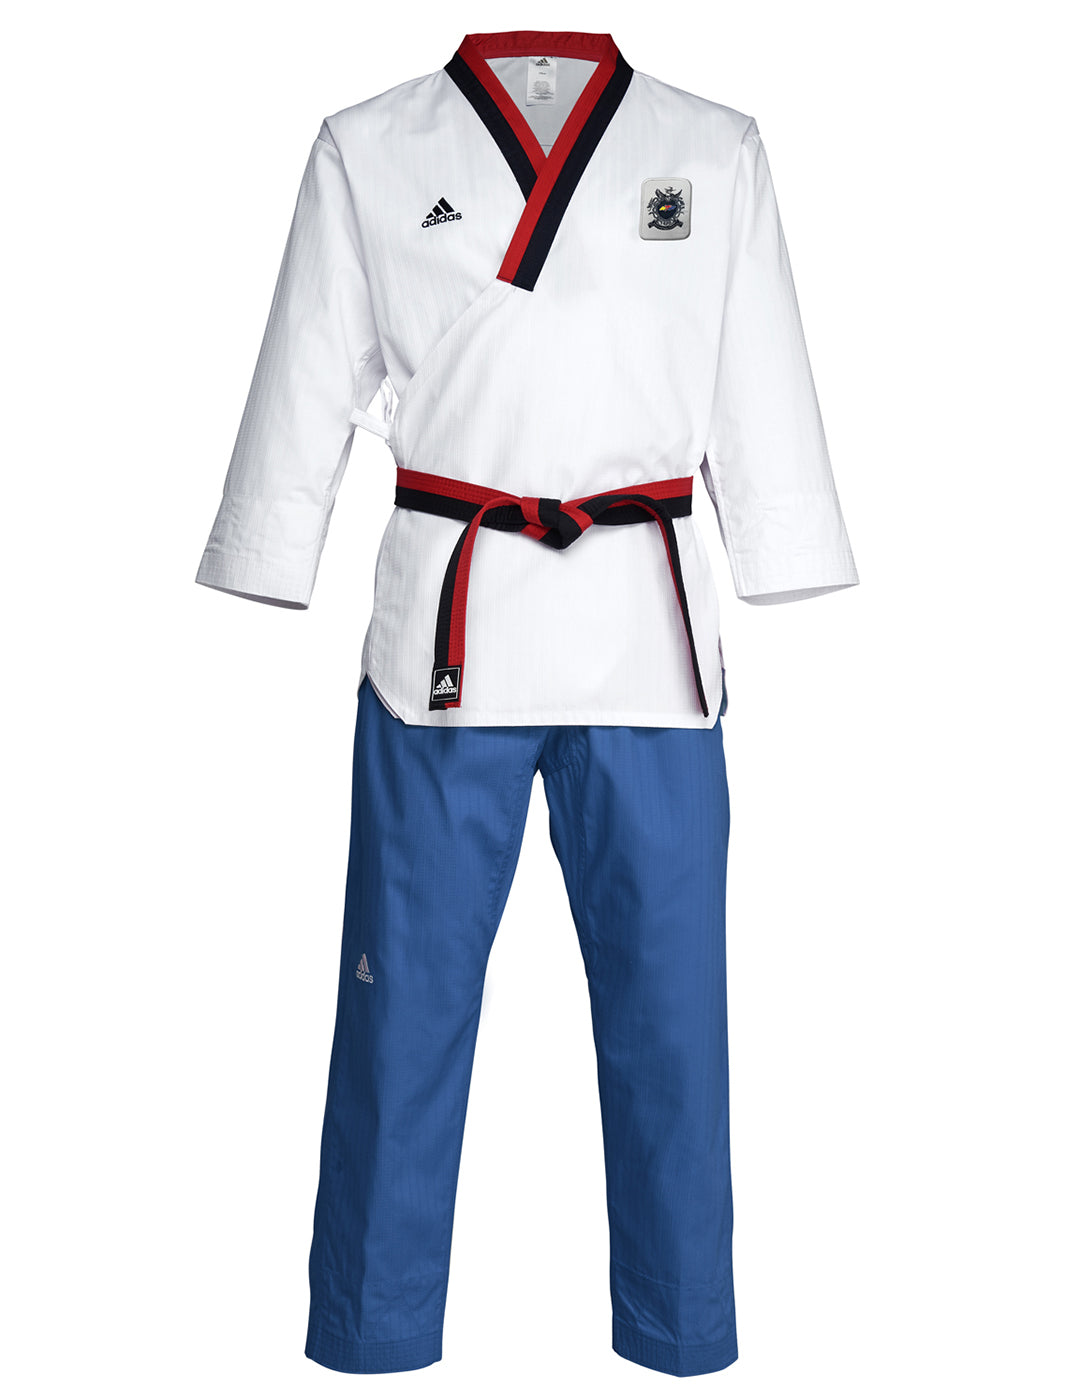 Adidas Poomsae  Uniform Youth Male